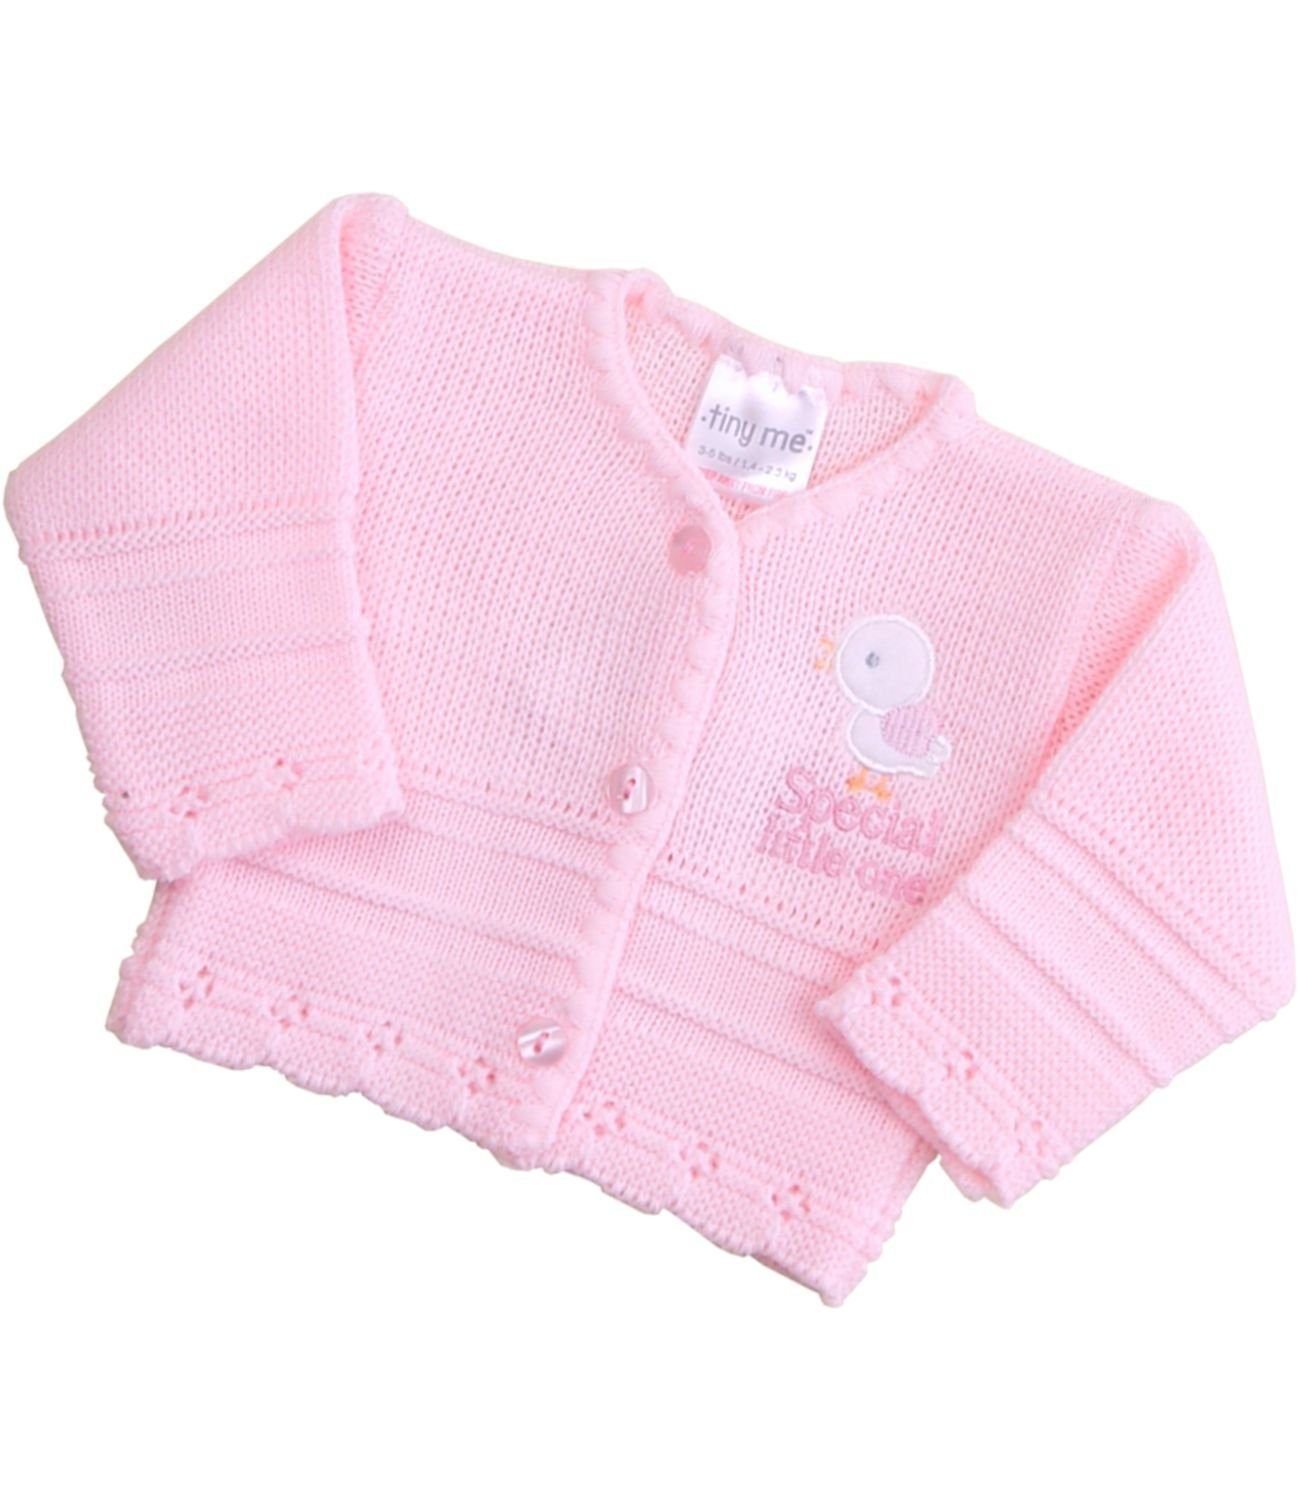 Babyprem Premature Baby Cardigan Boys Girls Special Little One 3.5-7.5lb SLD077